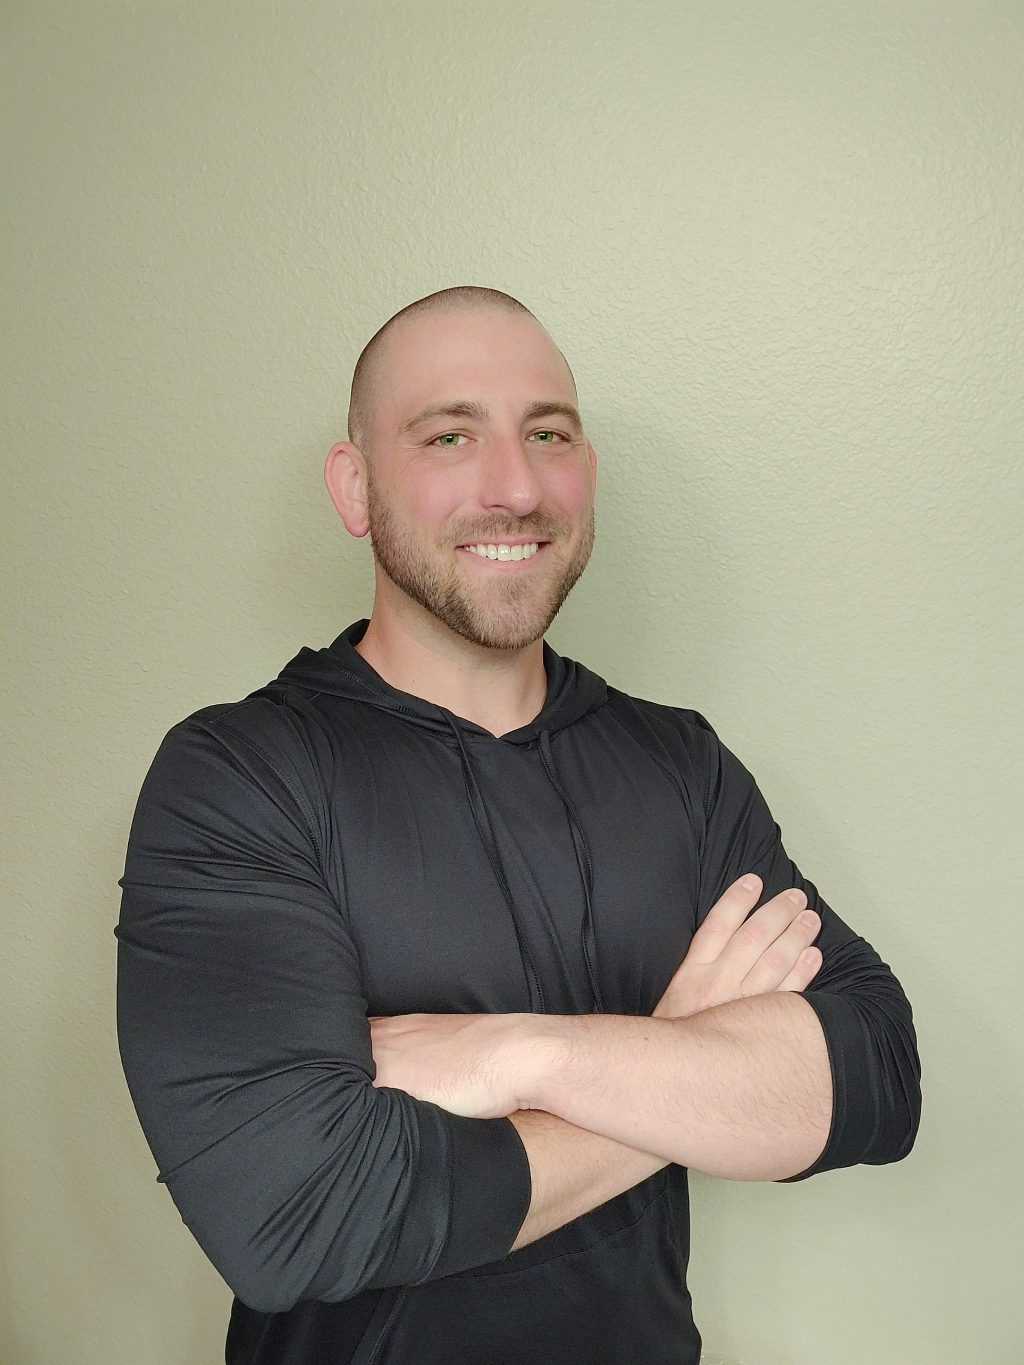 Personal Trainer Minneapolis, Minnesota - Matt Jessessky